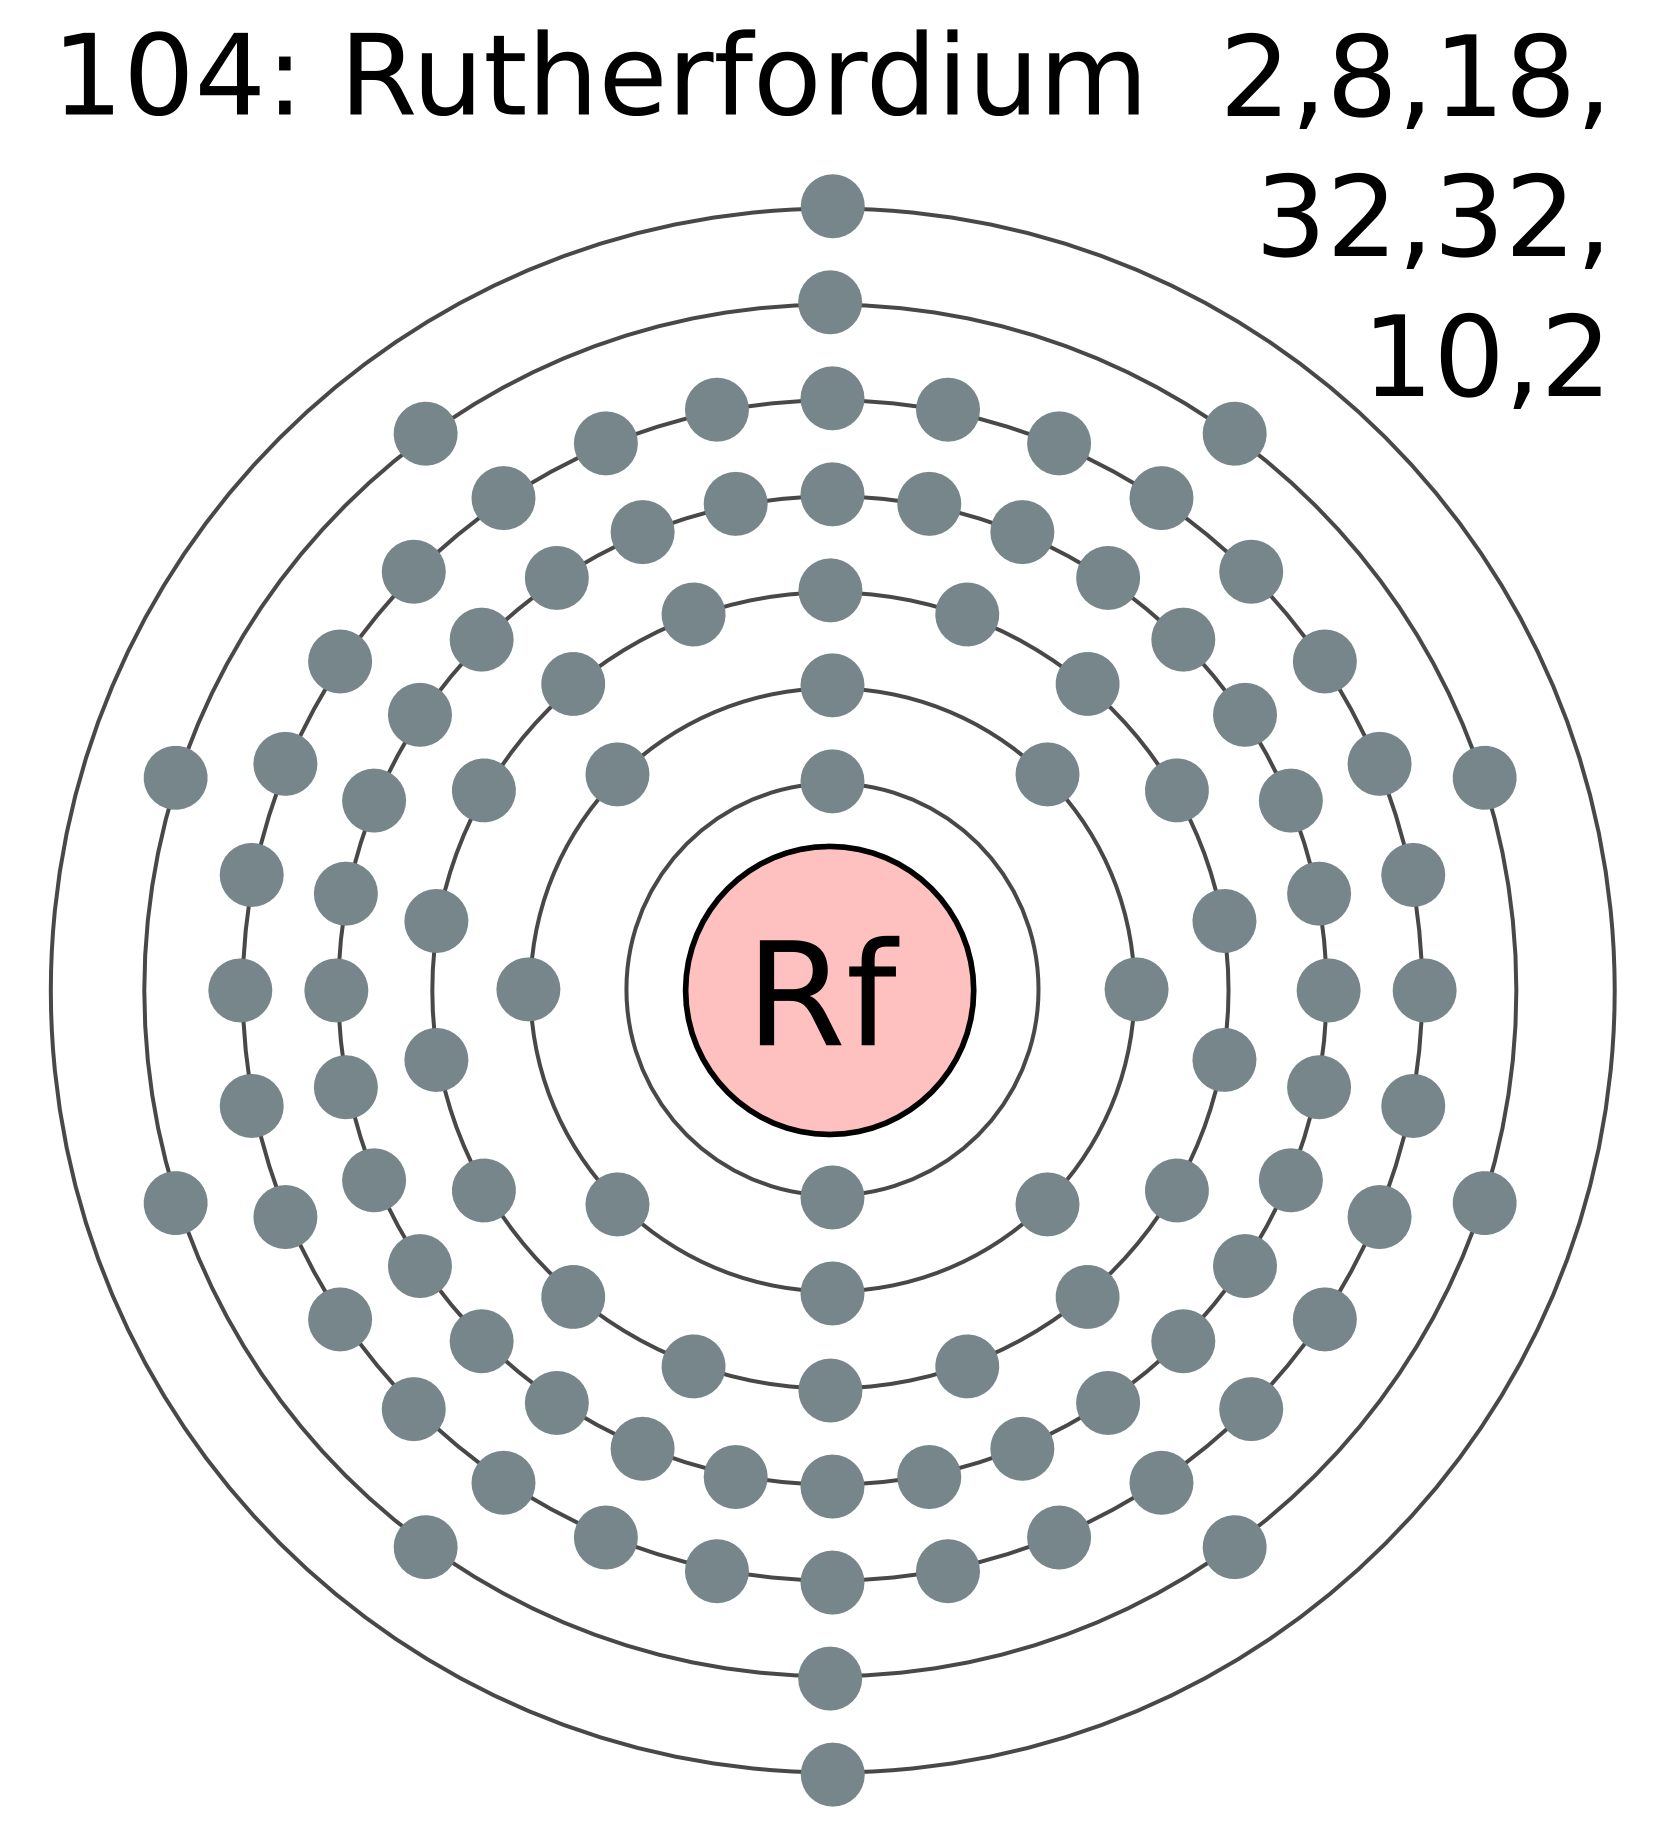 File:Electron shell 104 rutherfordium.png